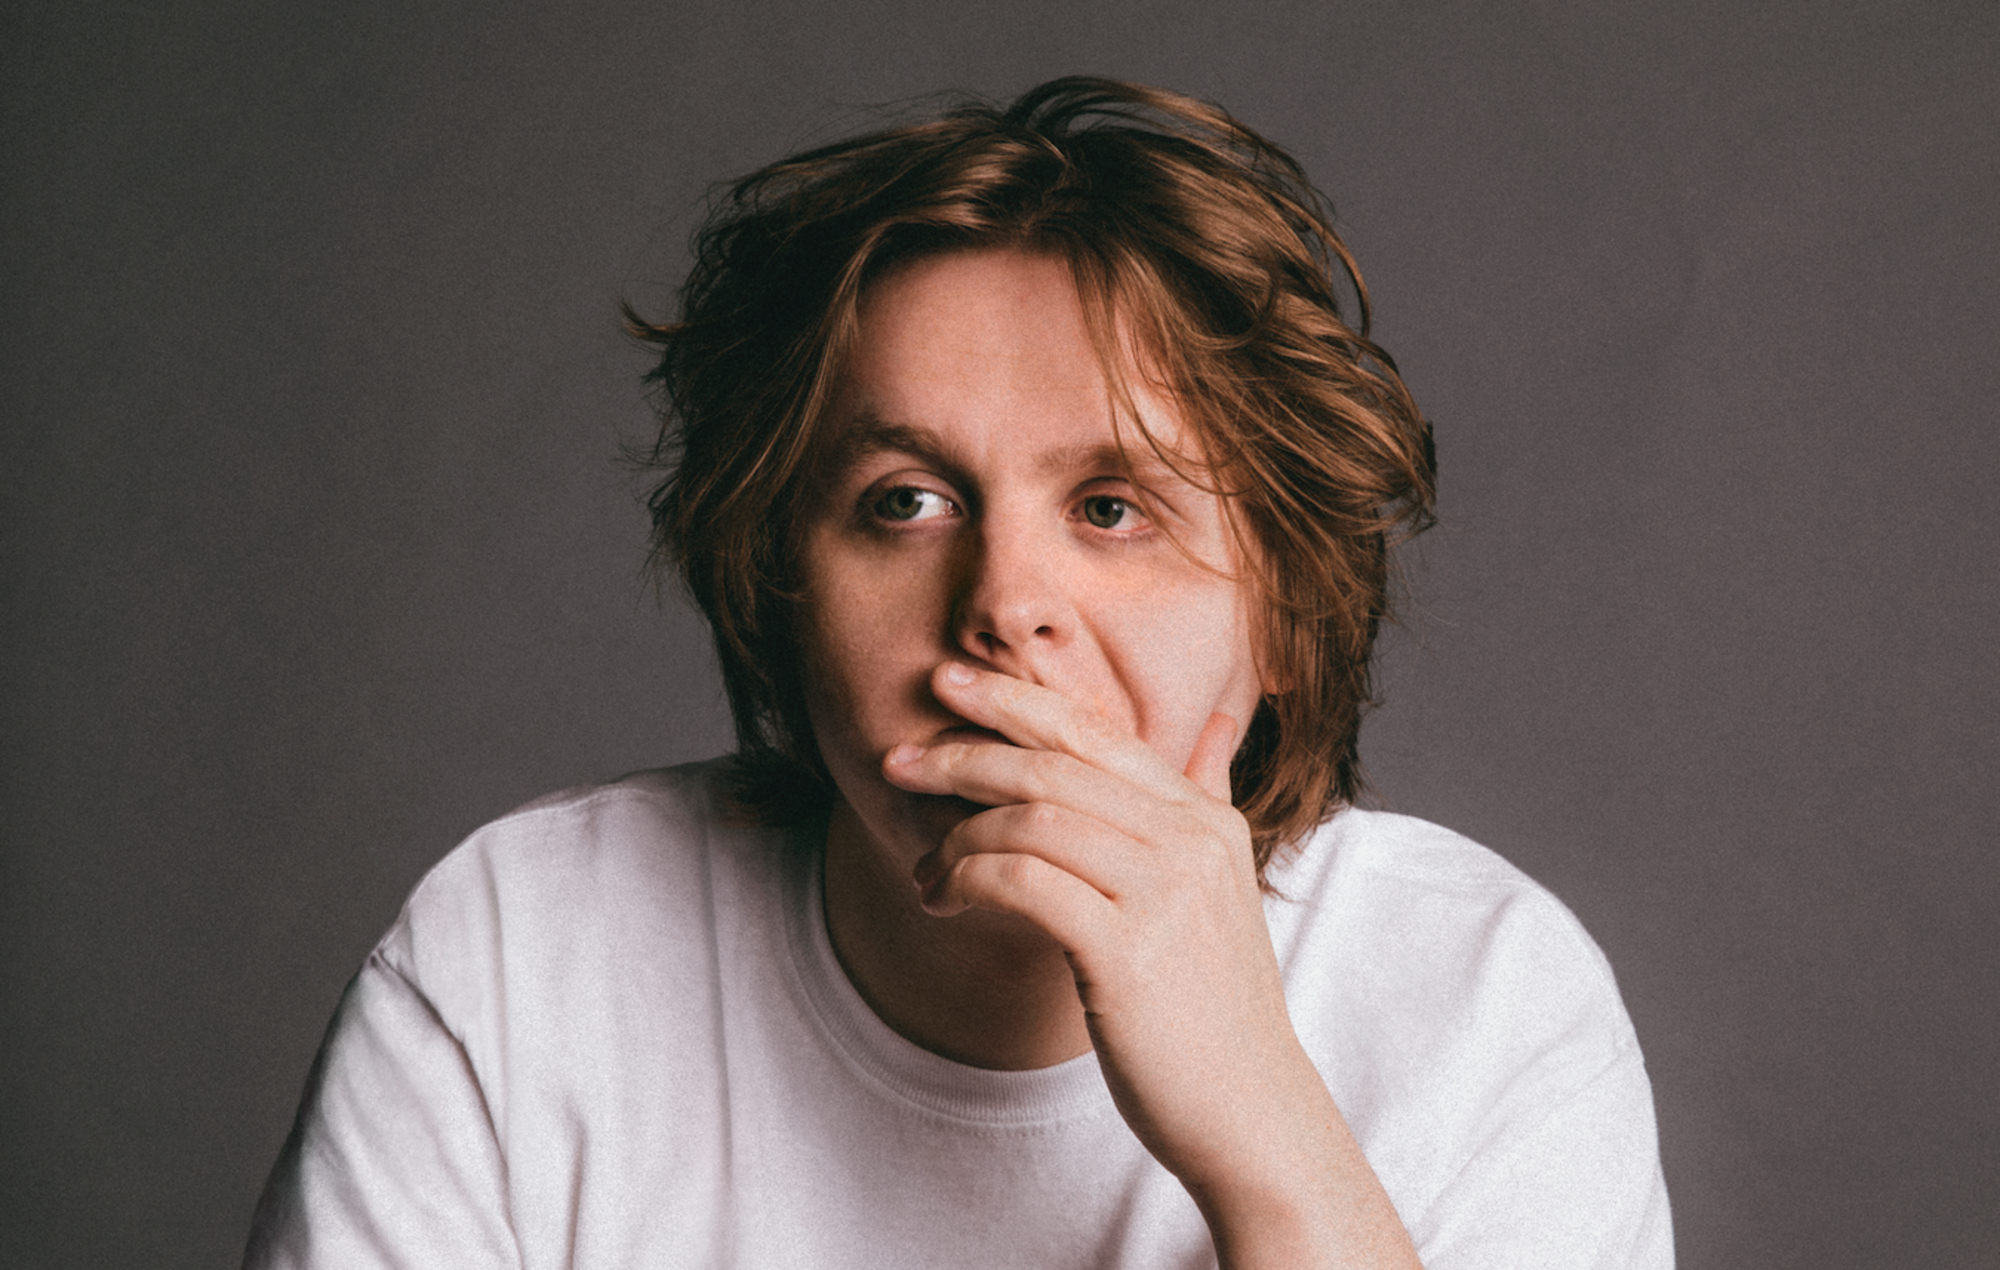 Lewis Capaldi to release new documentary that captures his rise to stardom and creative process